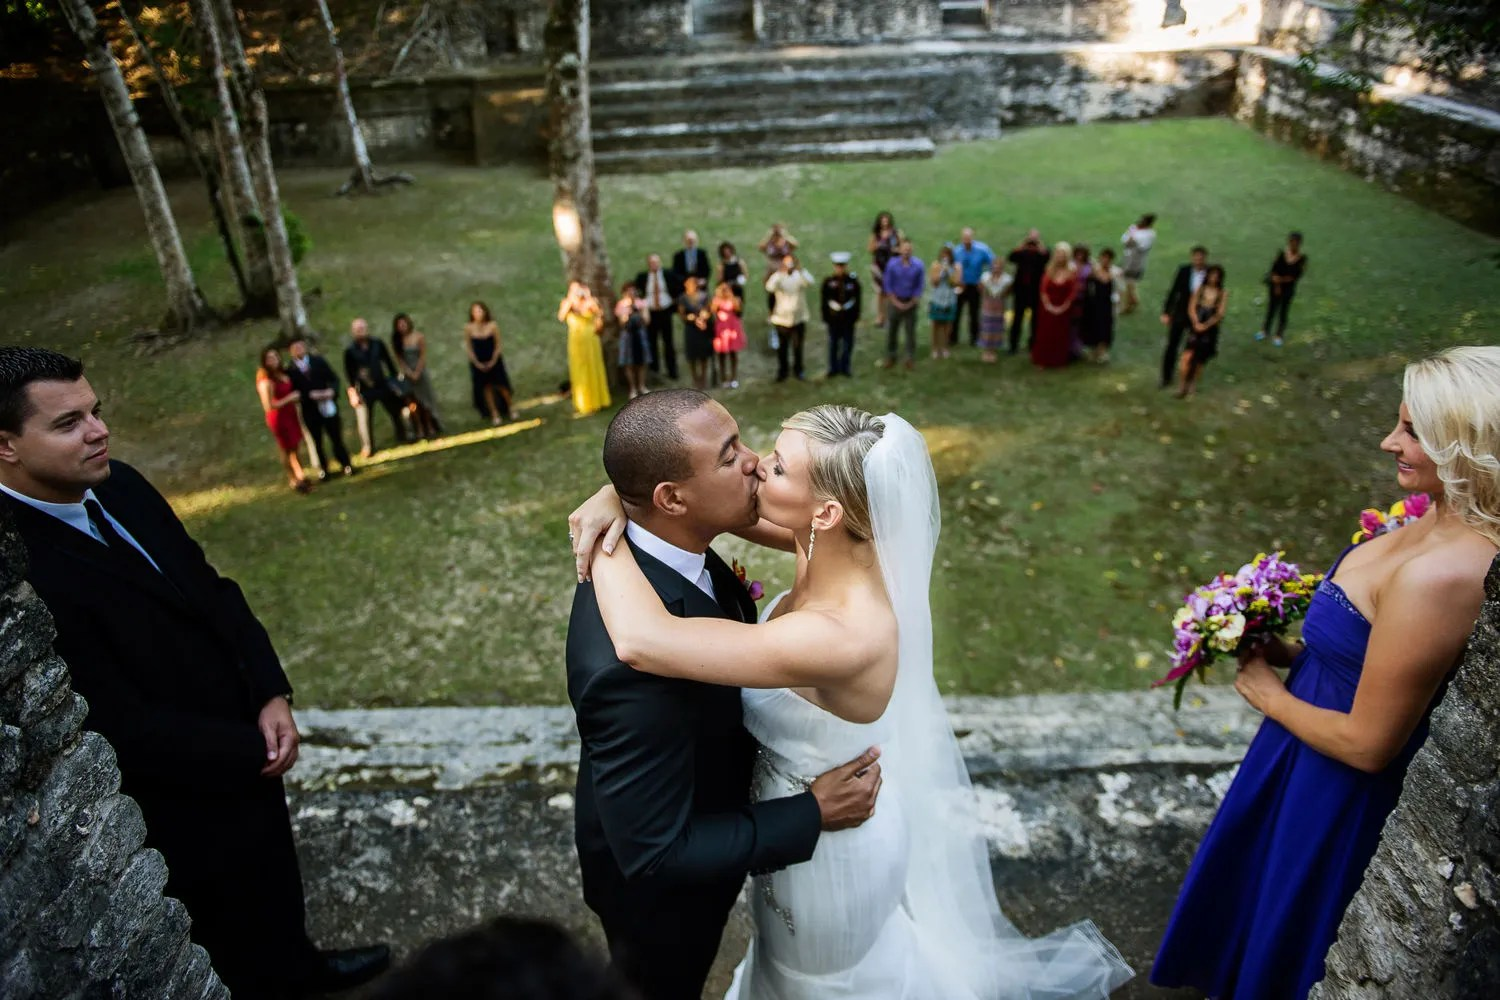 Unique Wedding Venues 10 Crazy Awesome and Unexpected